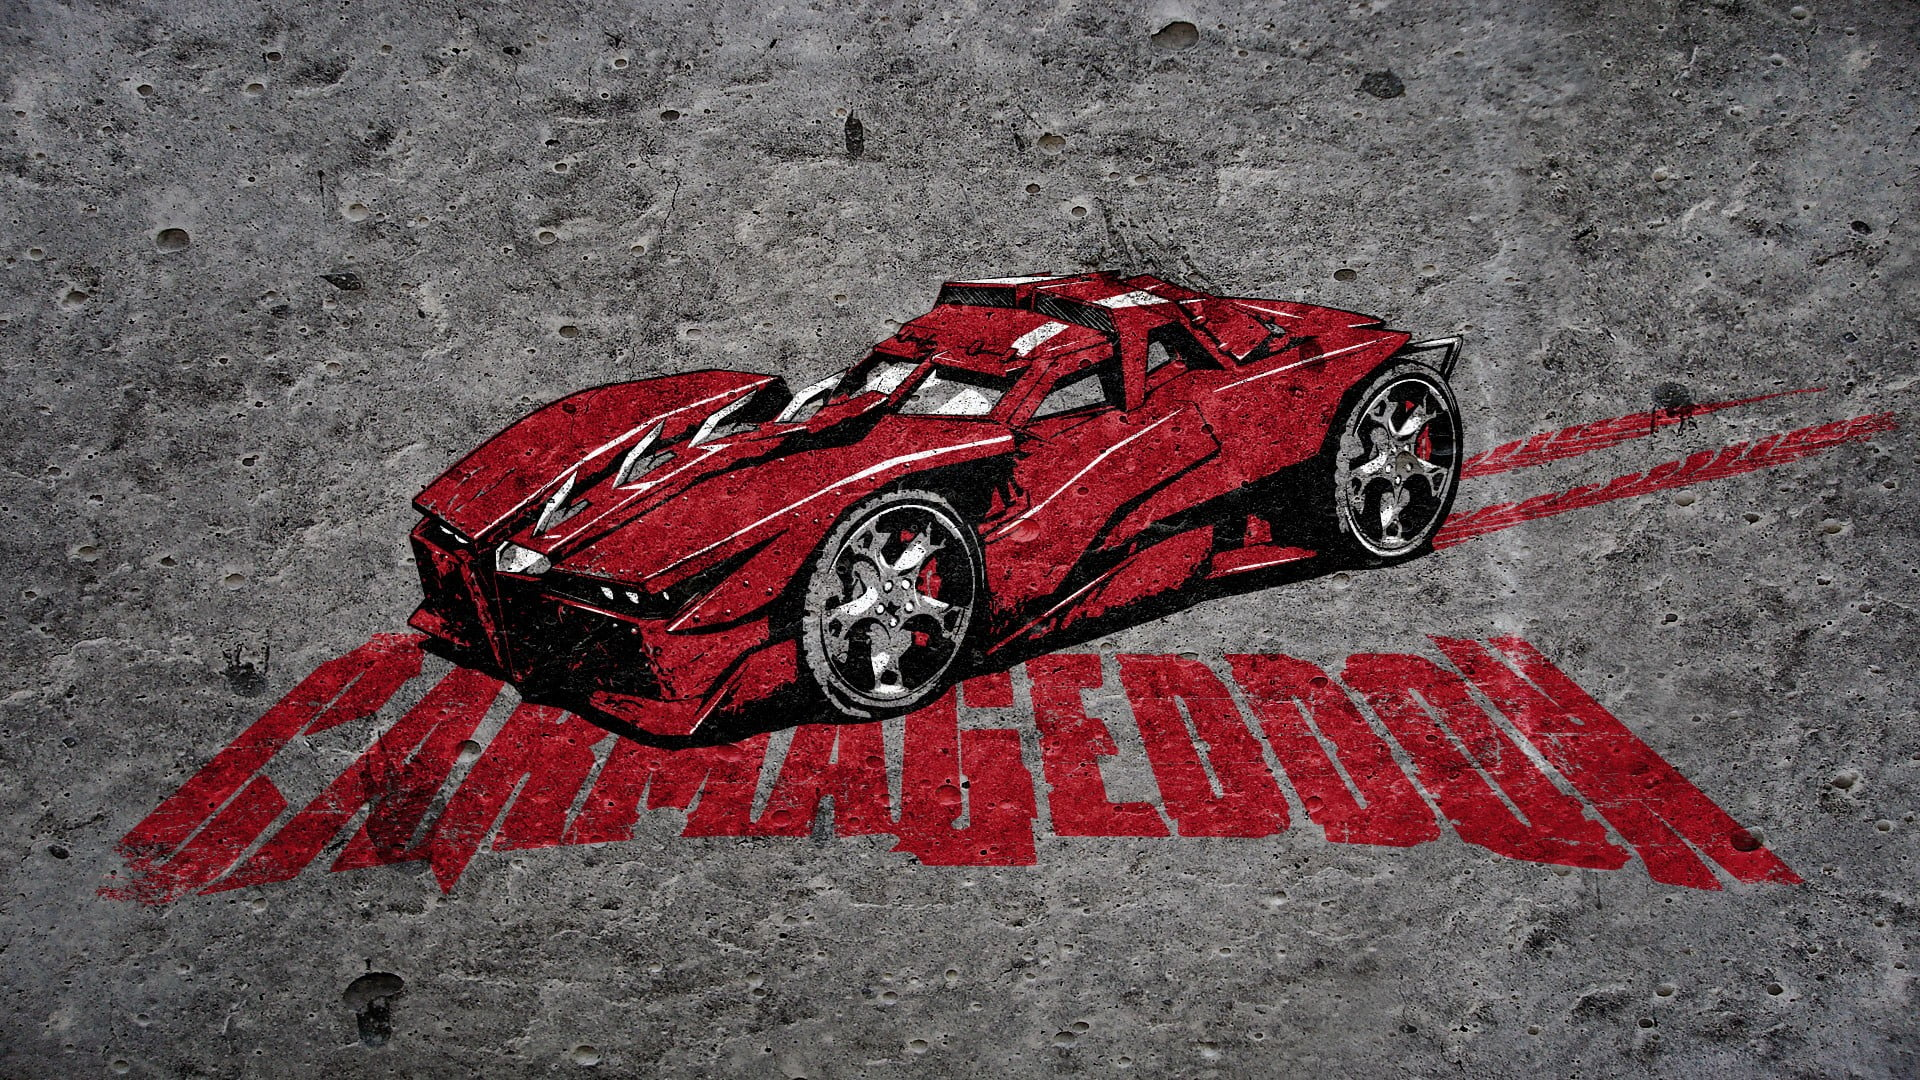 Red car digital wallpaper Carmageddon HD wallpaper Wallpaper Flare 1920x1080